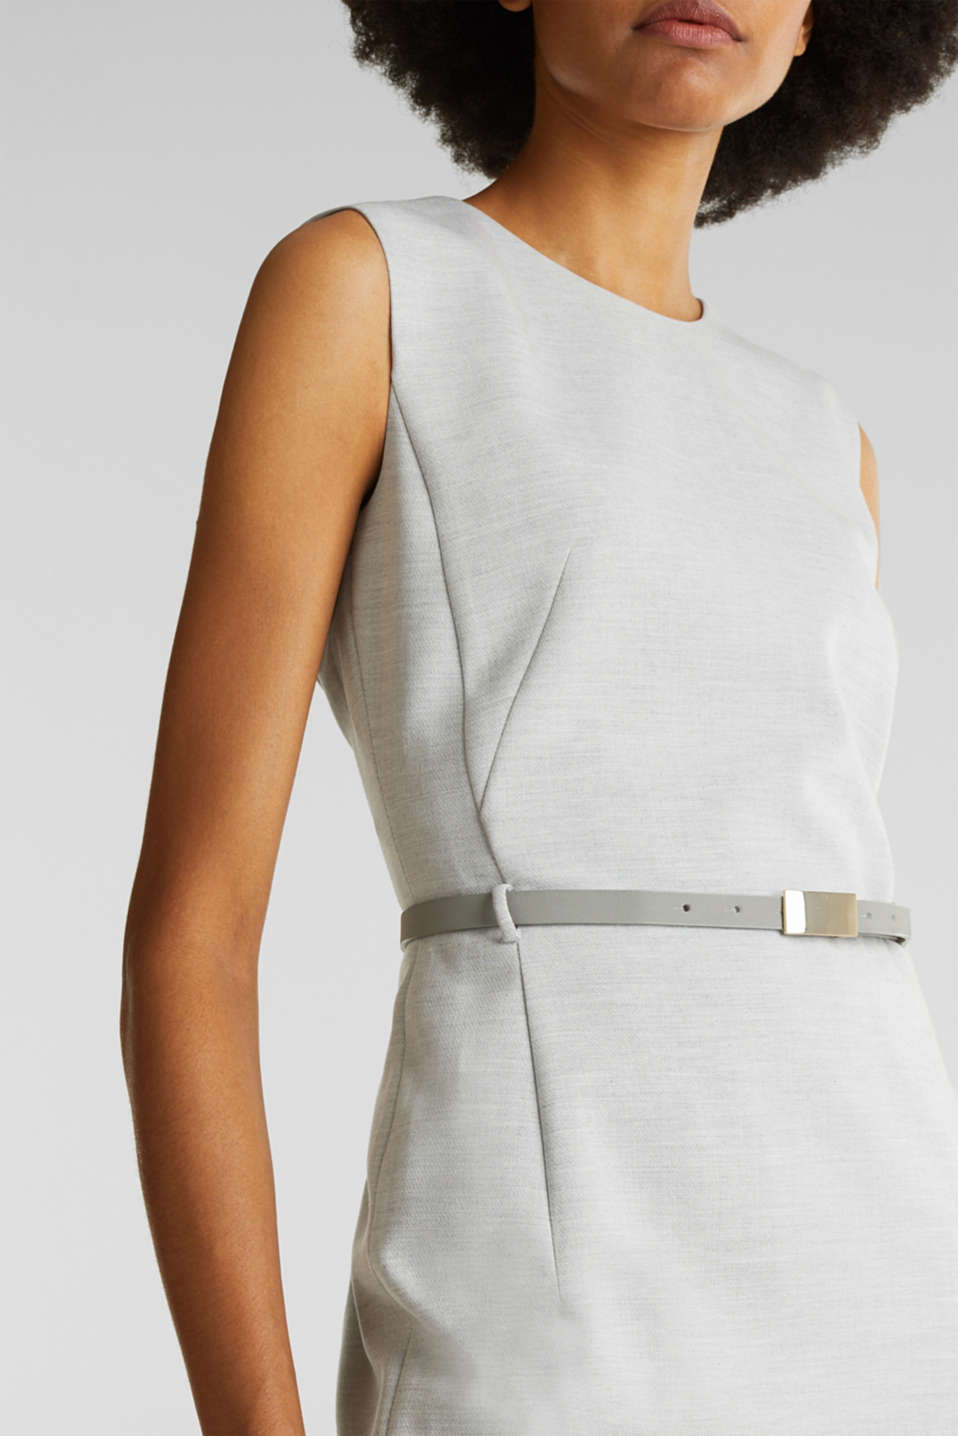 Sheath dress with a buckled belt, LIGHT GREY 5, detail image number 5